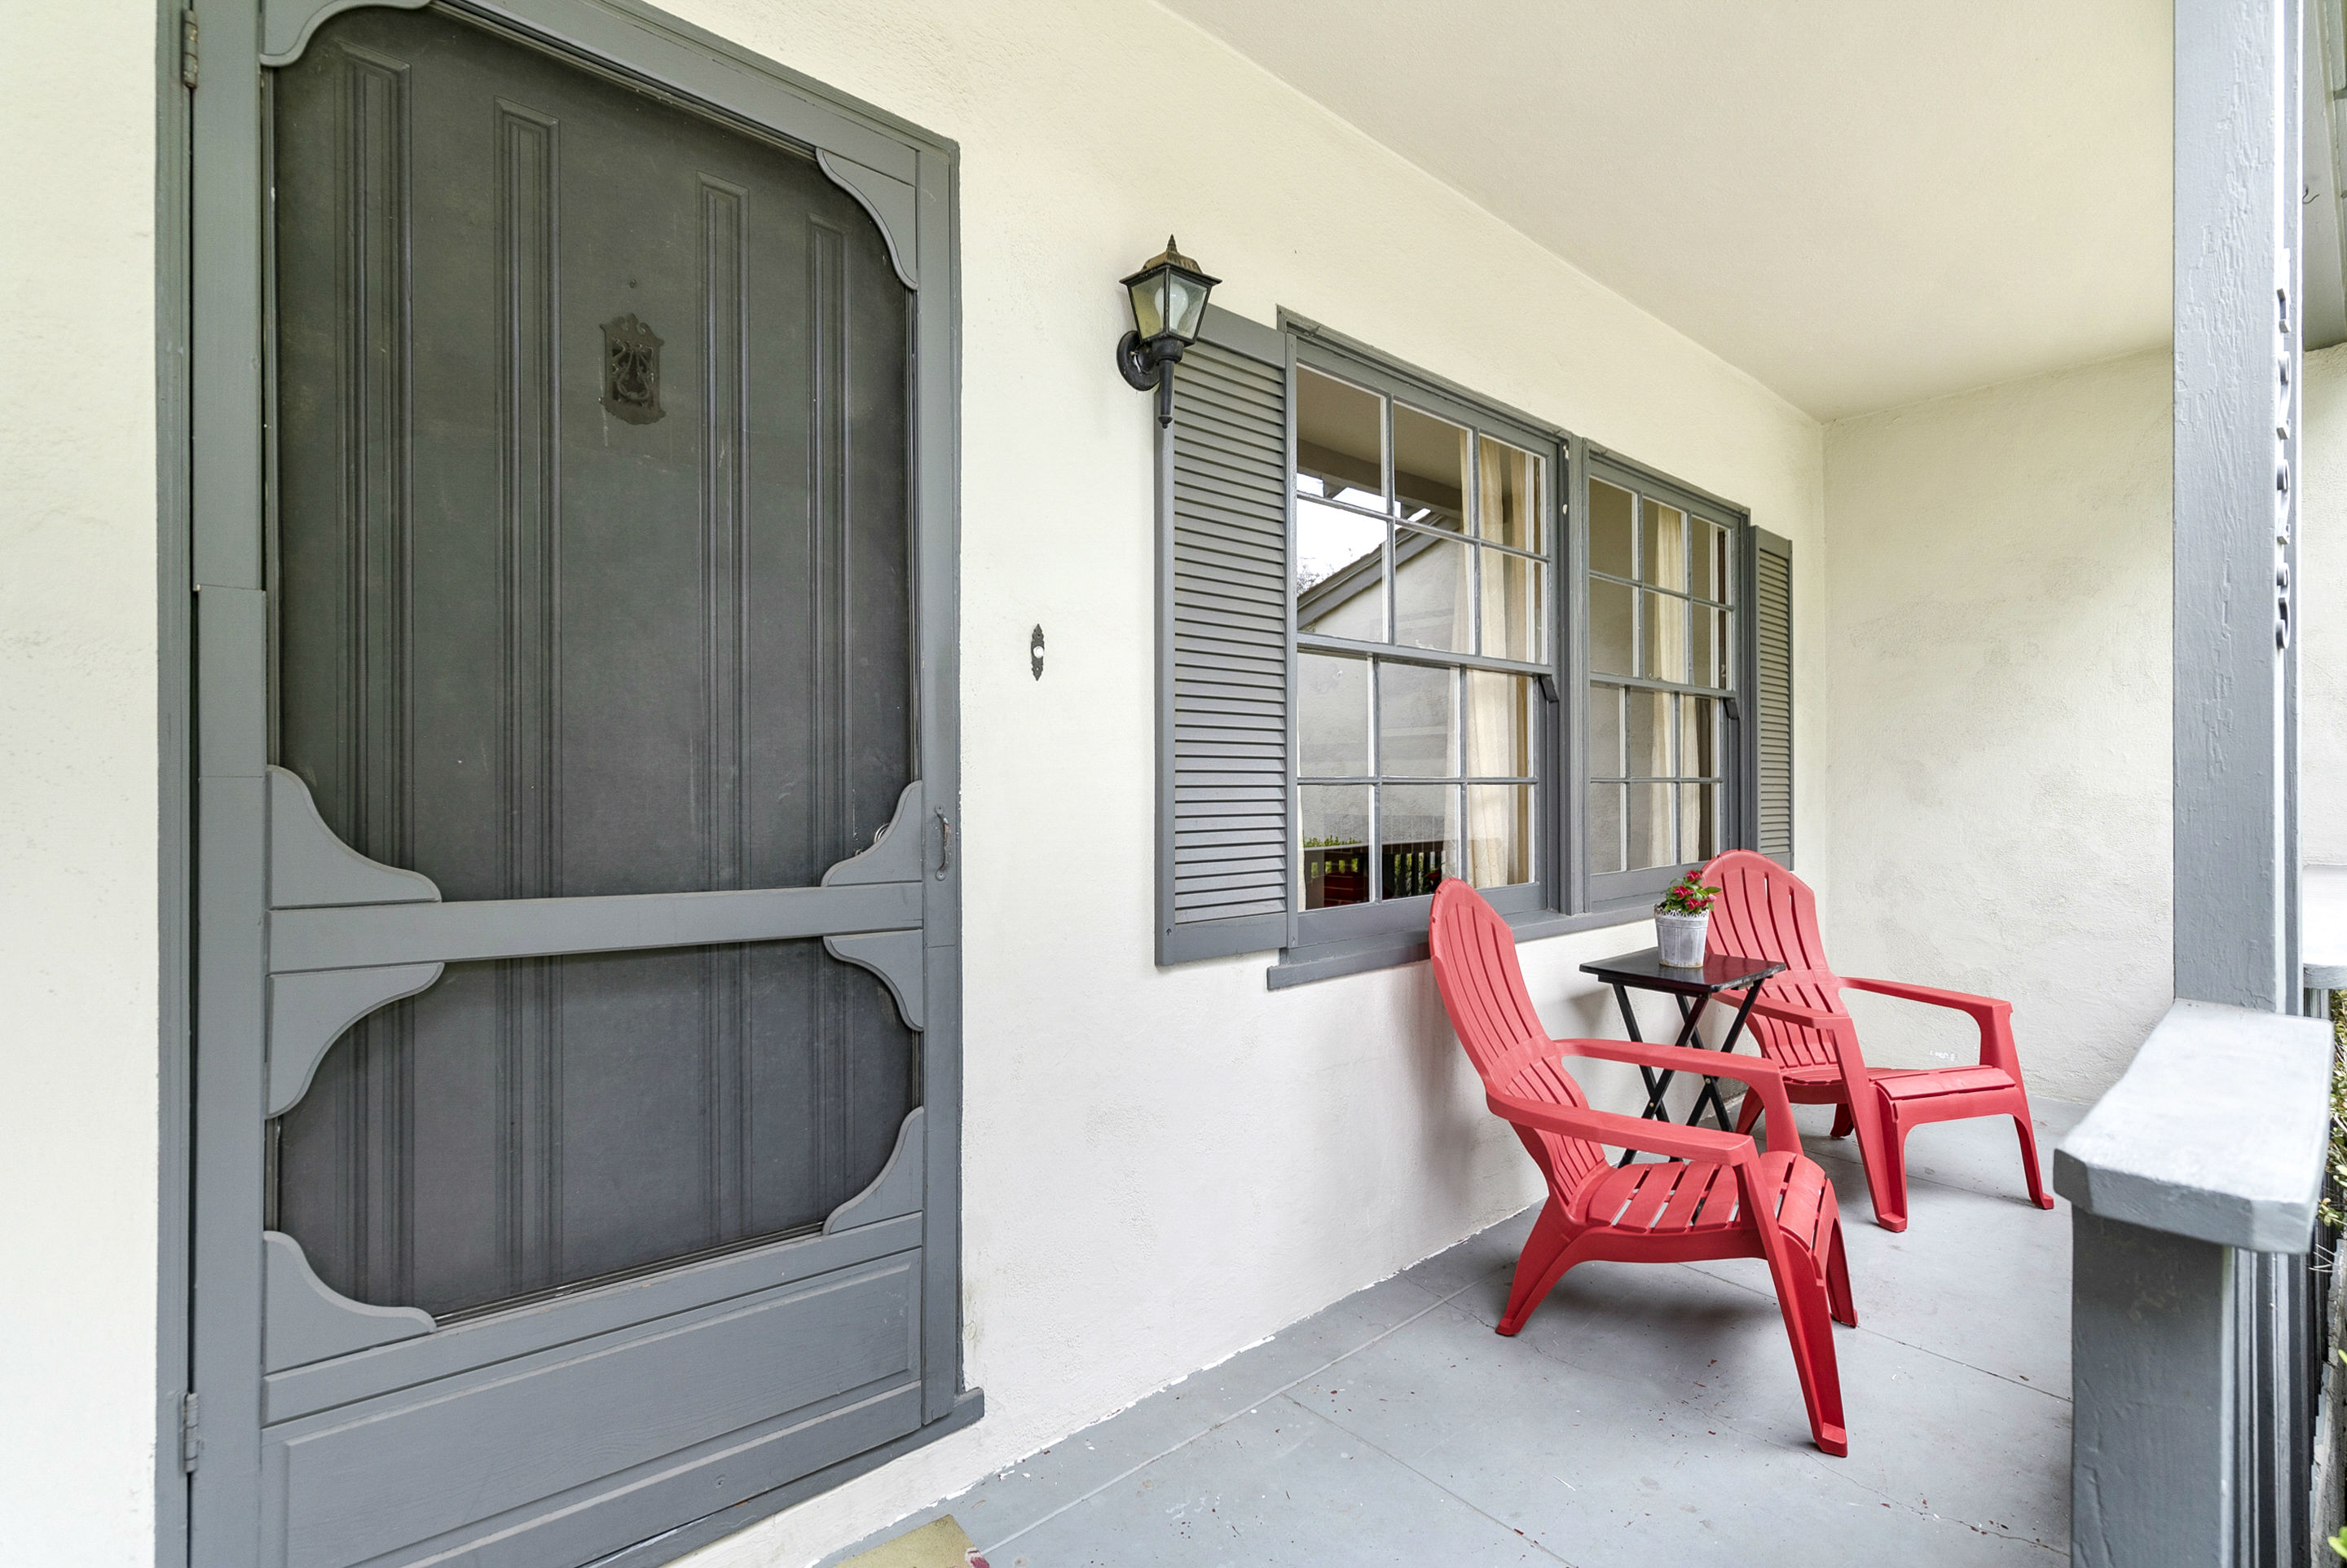 Breezy front porch with Adirondack chairs included.